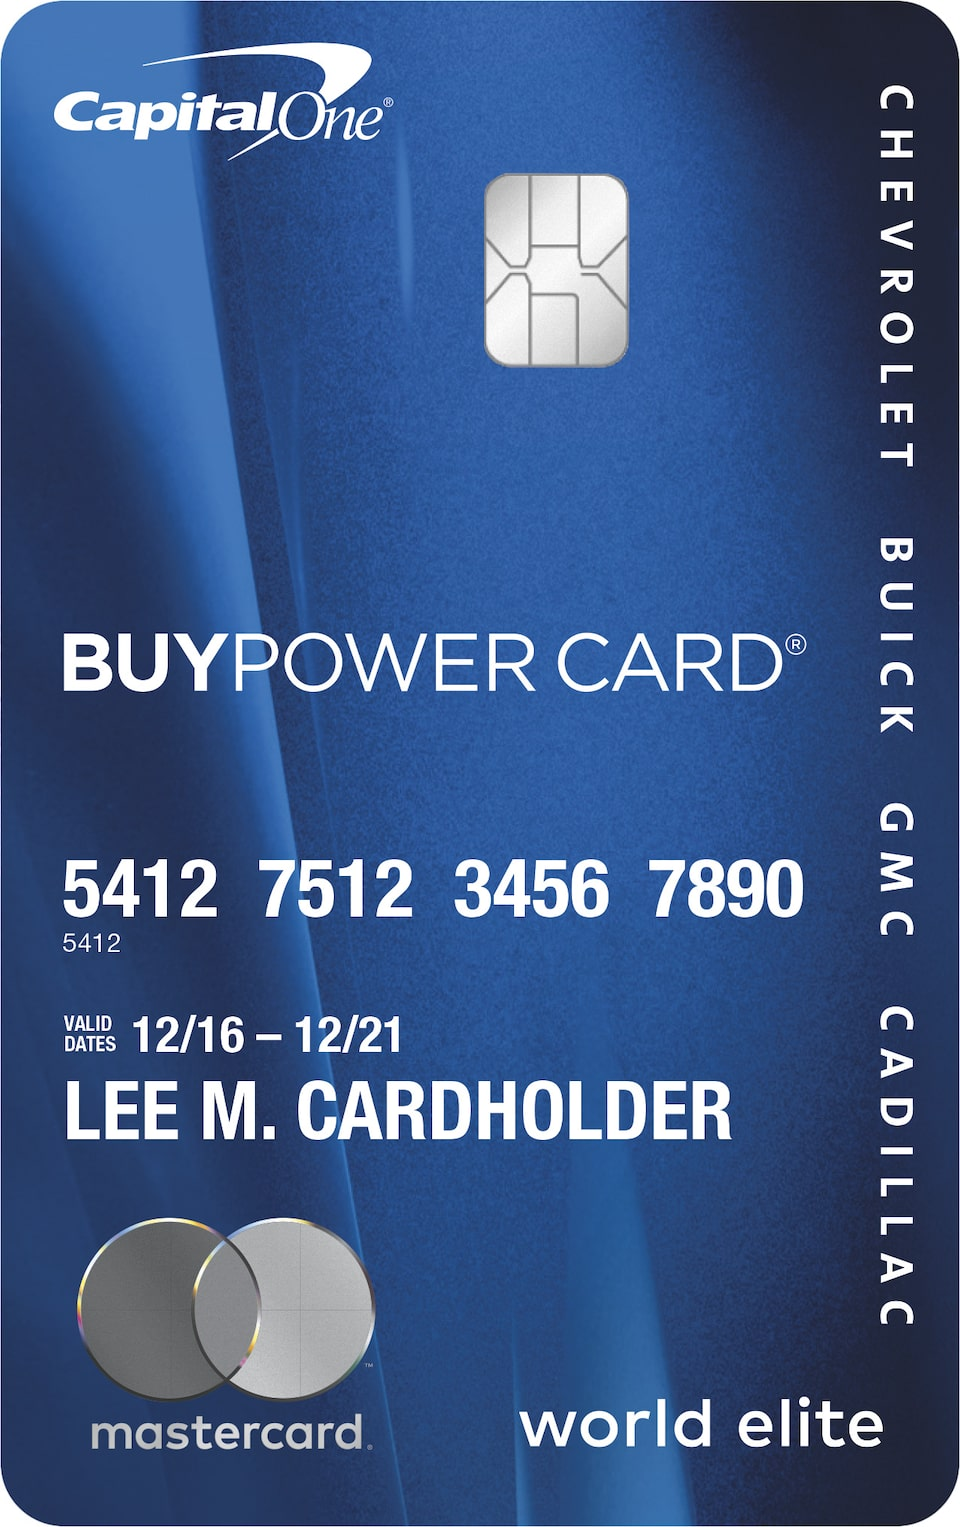 Apply for a BuyPower Card and earn points on every purchase toward a new Chevrolet, GMC, Buick, or Cadillac.